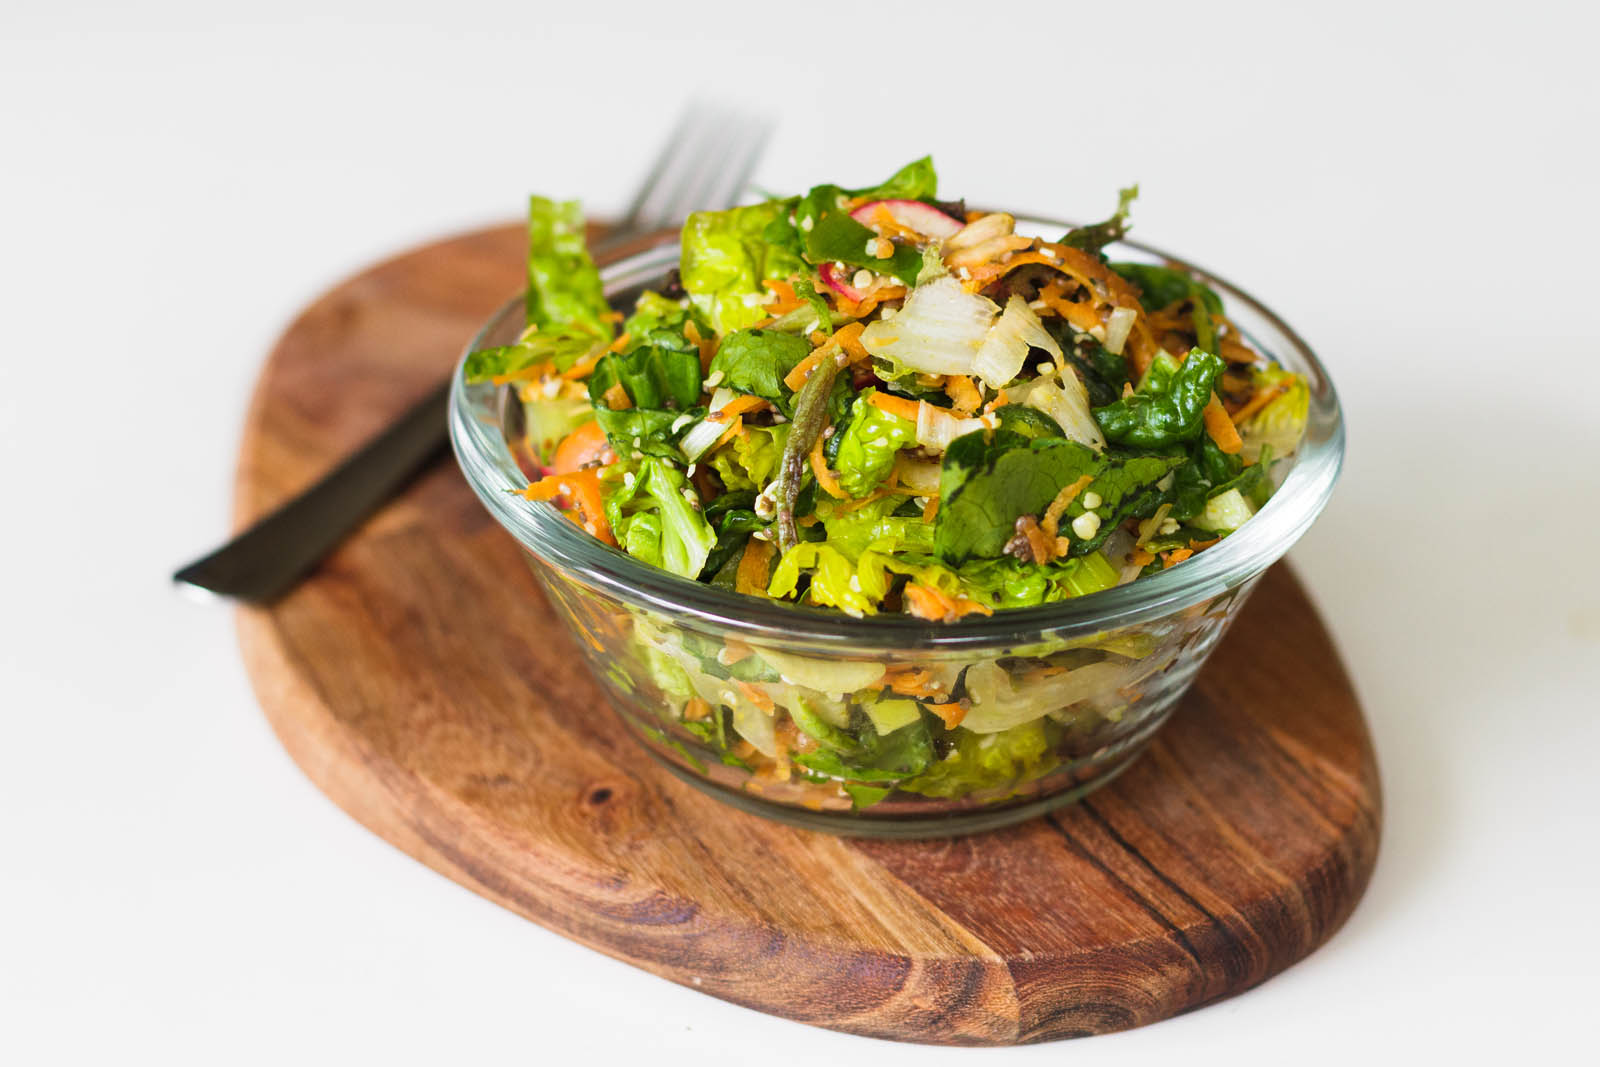 One bowl of summer green salad